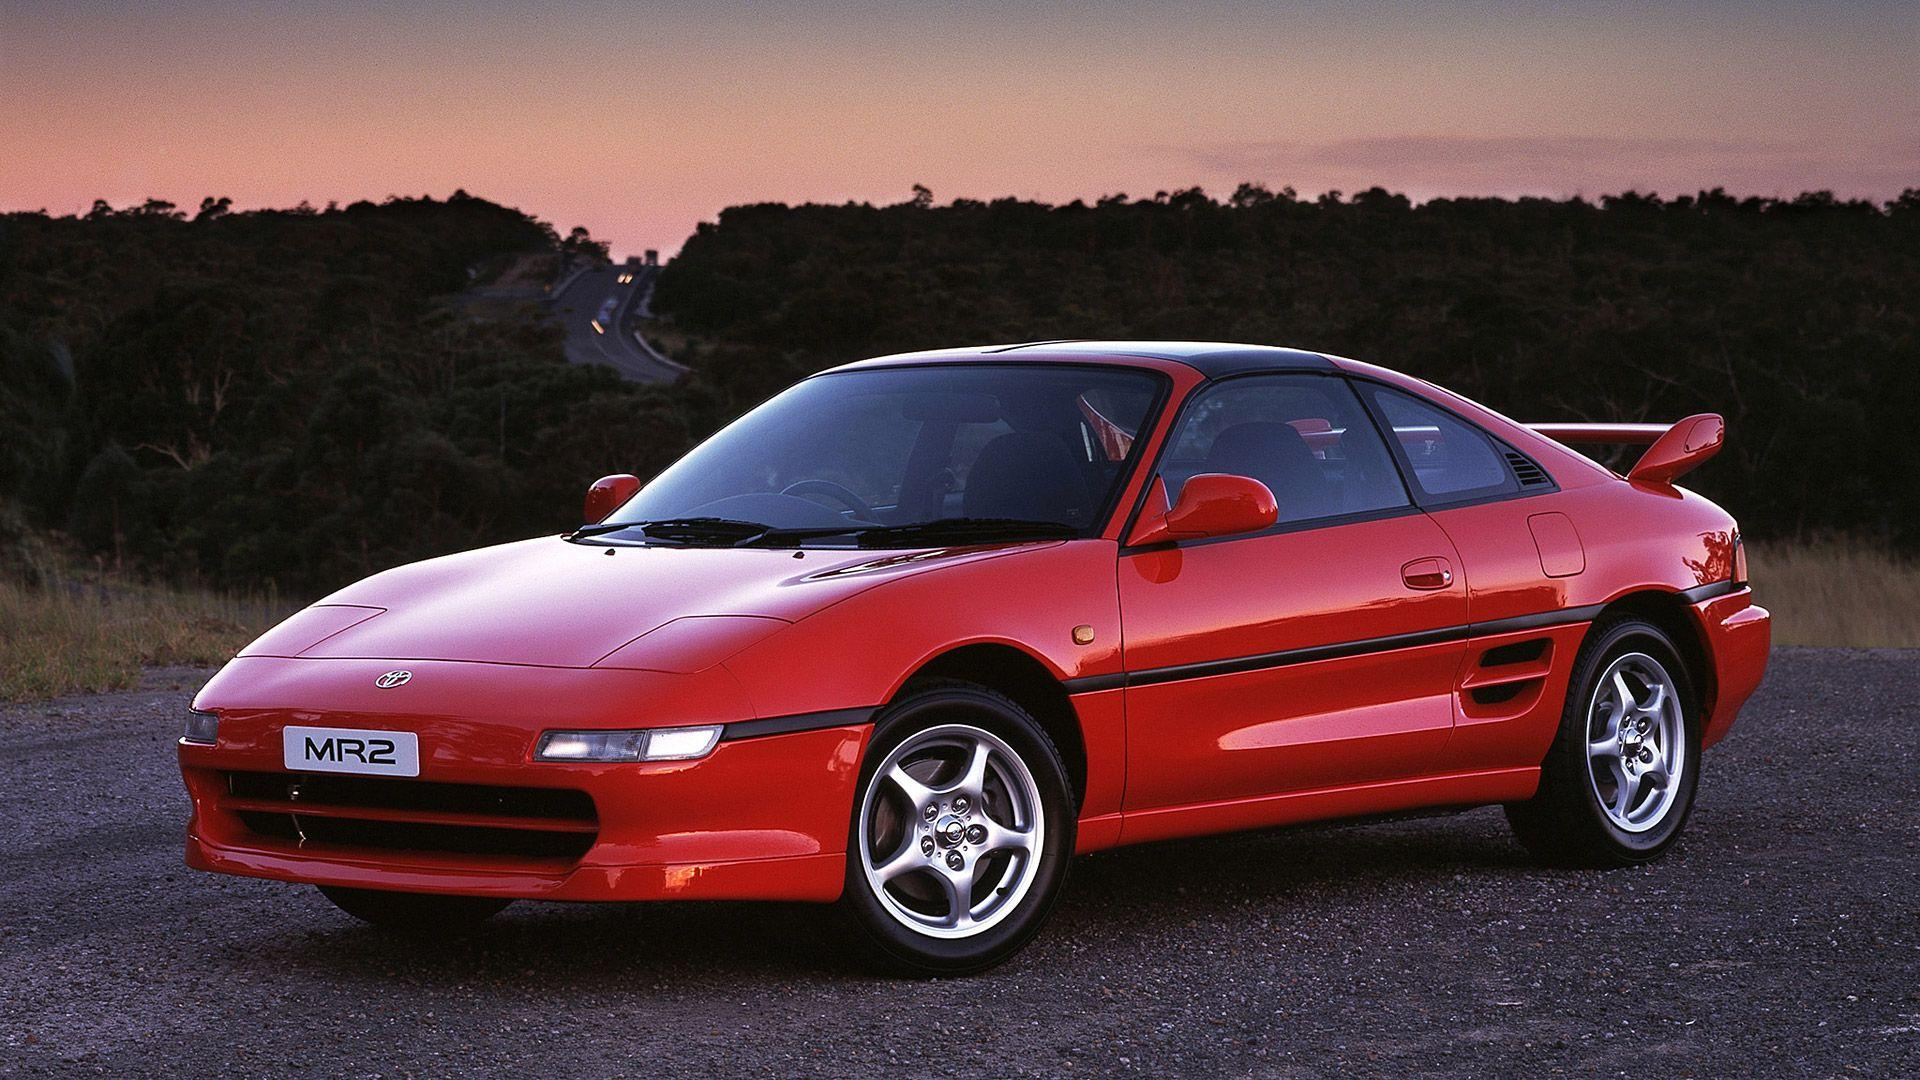 1993 Toyota MR2 Wallpapers & HD Image